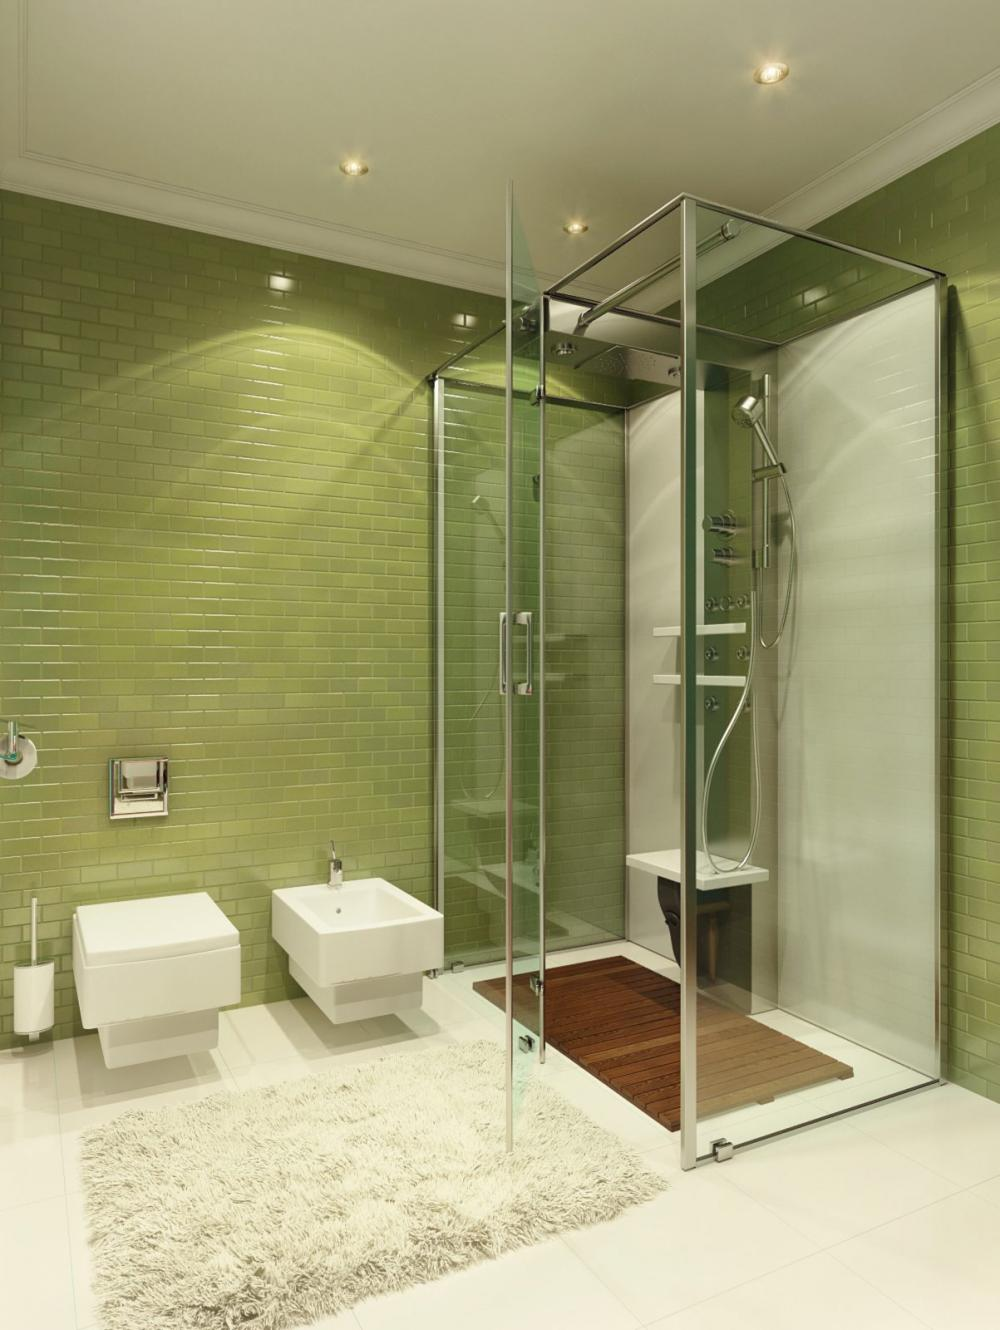 40 Vintage Green Bathroom Tile Ideas And Pictures 2019